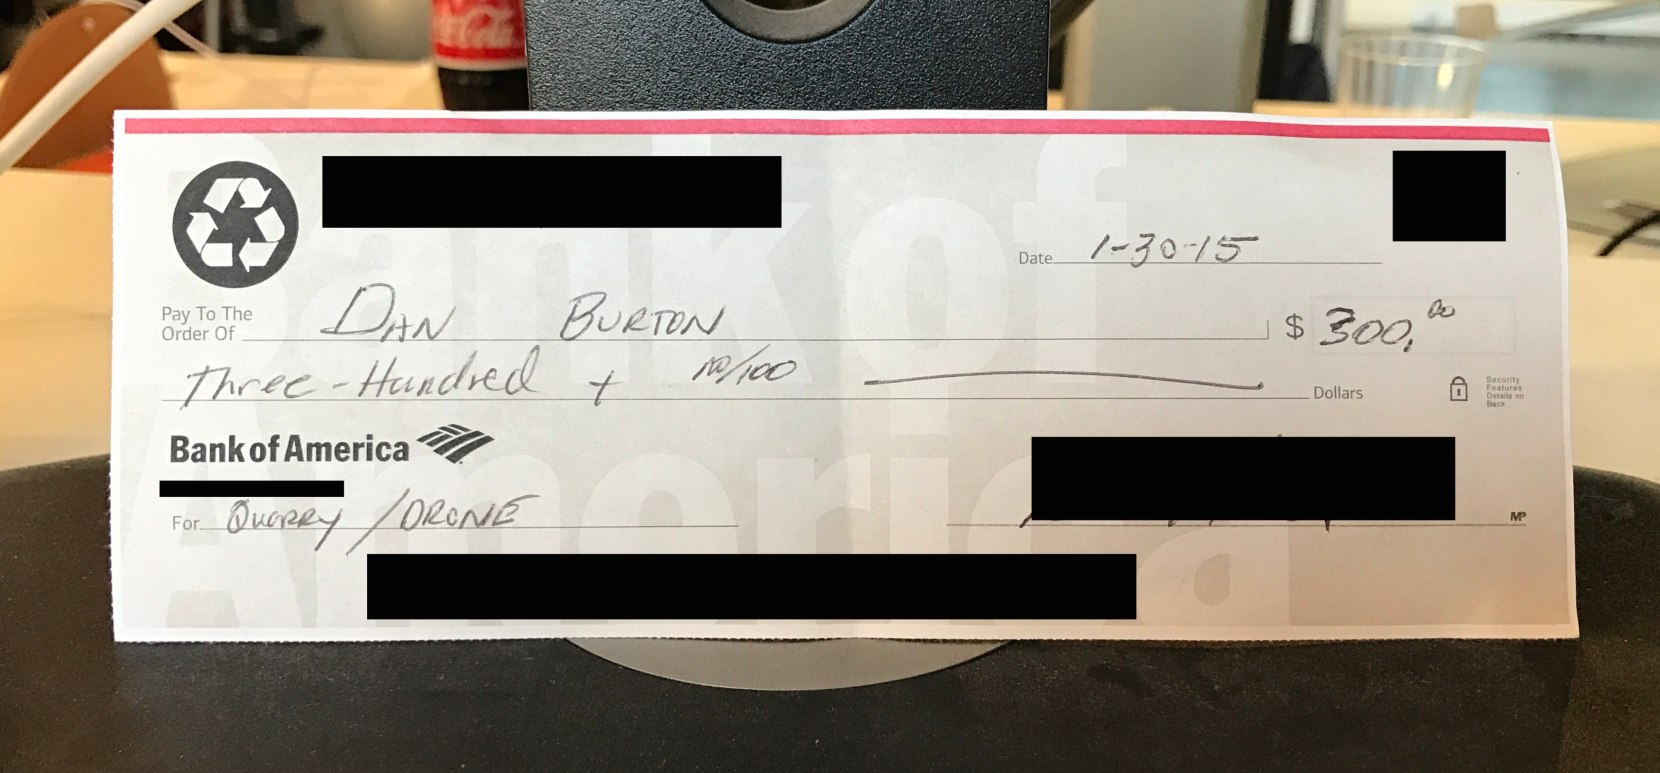 DroneBase's First check